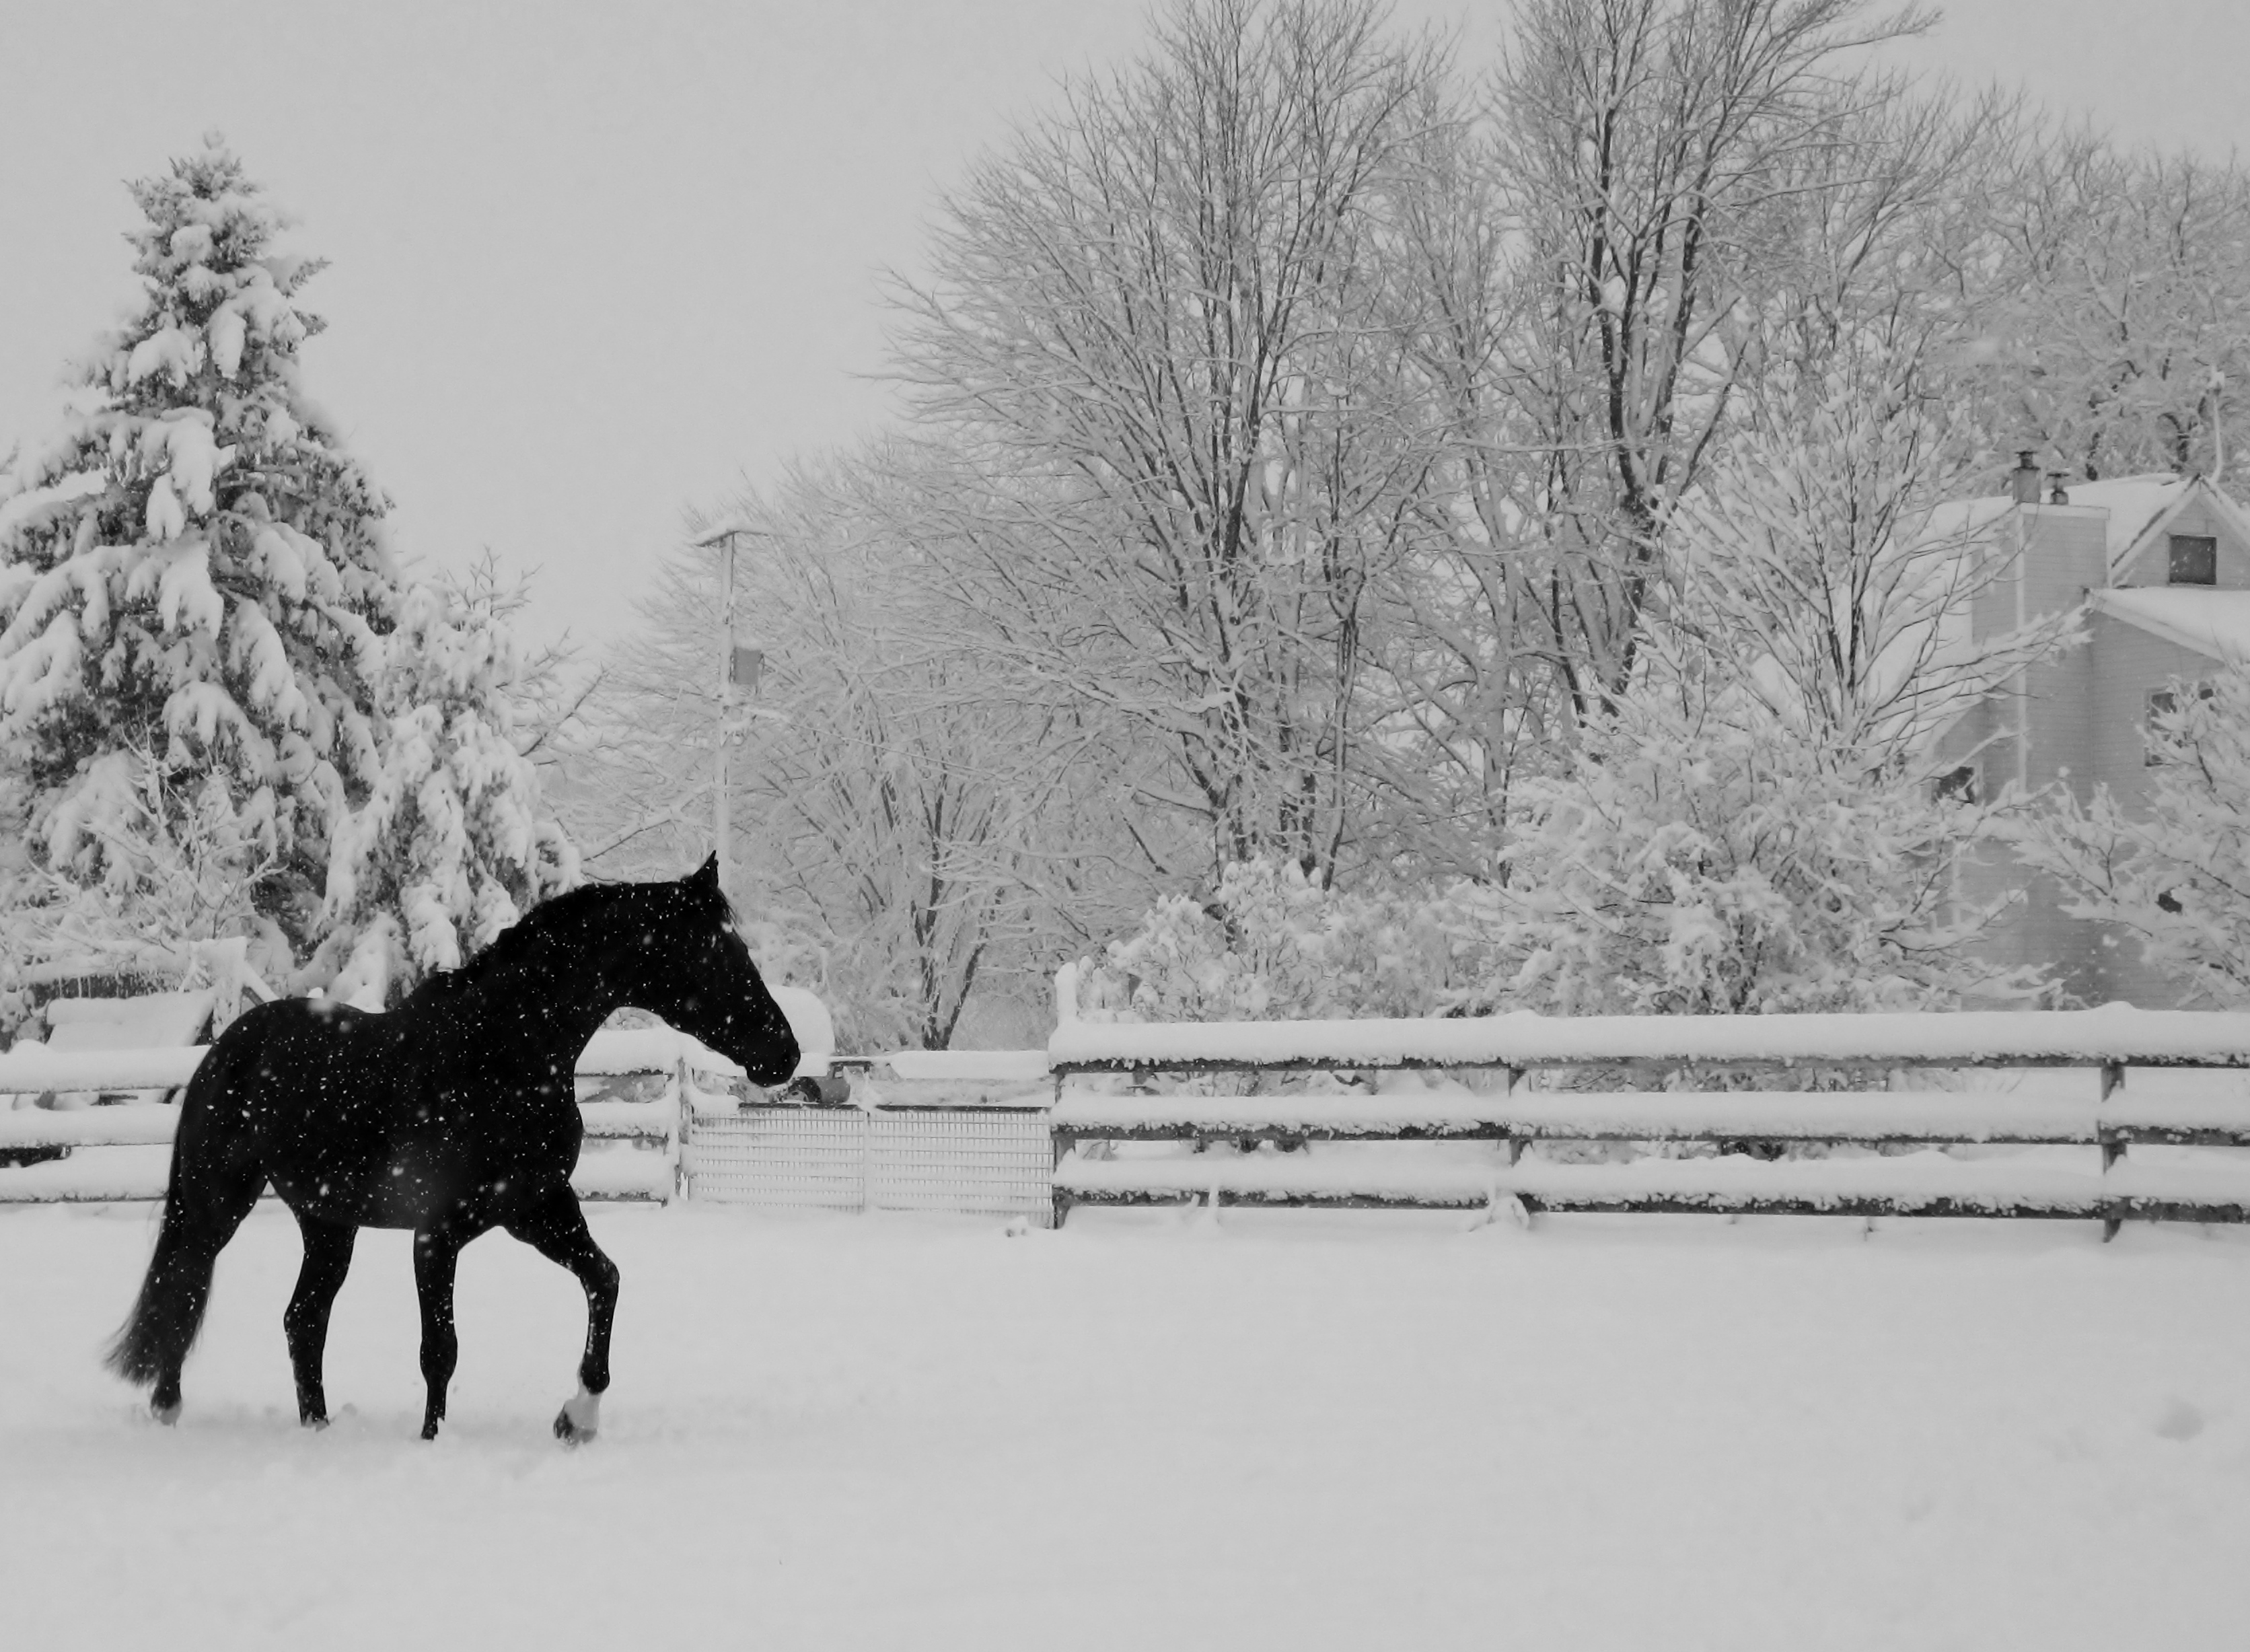 Gatsby at home in the snow